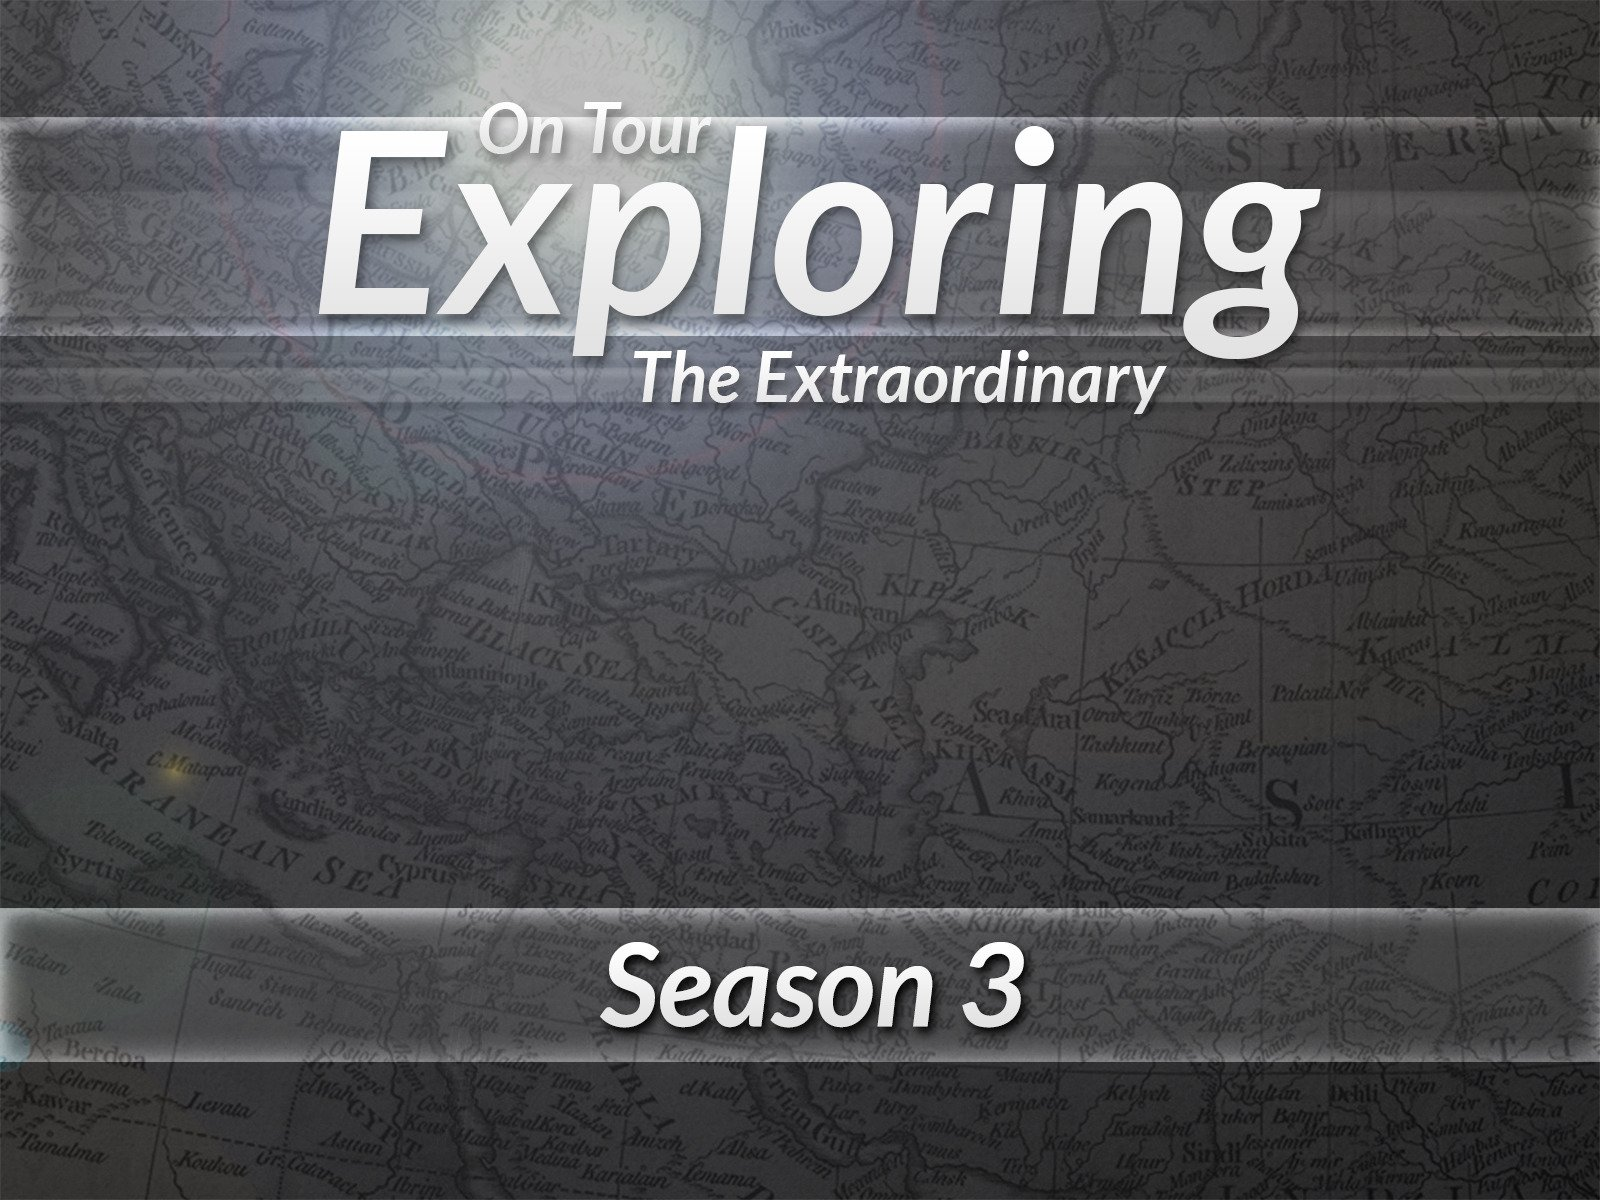 On Tour: Exploring the Extraordinary - Season 3